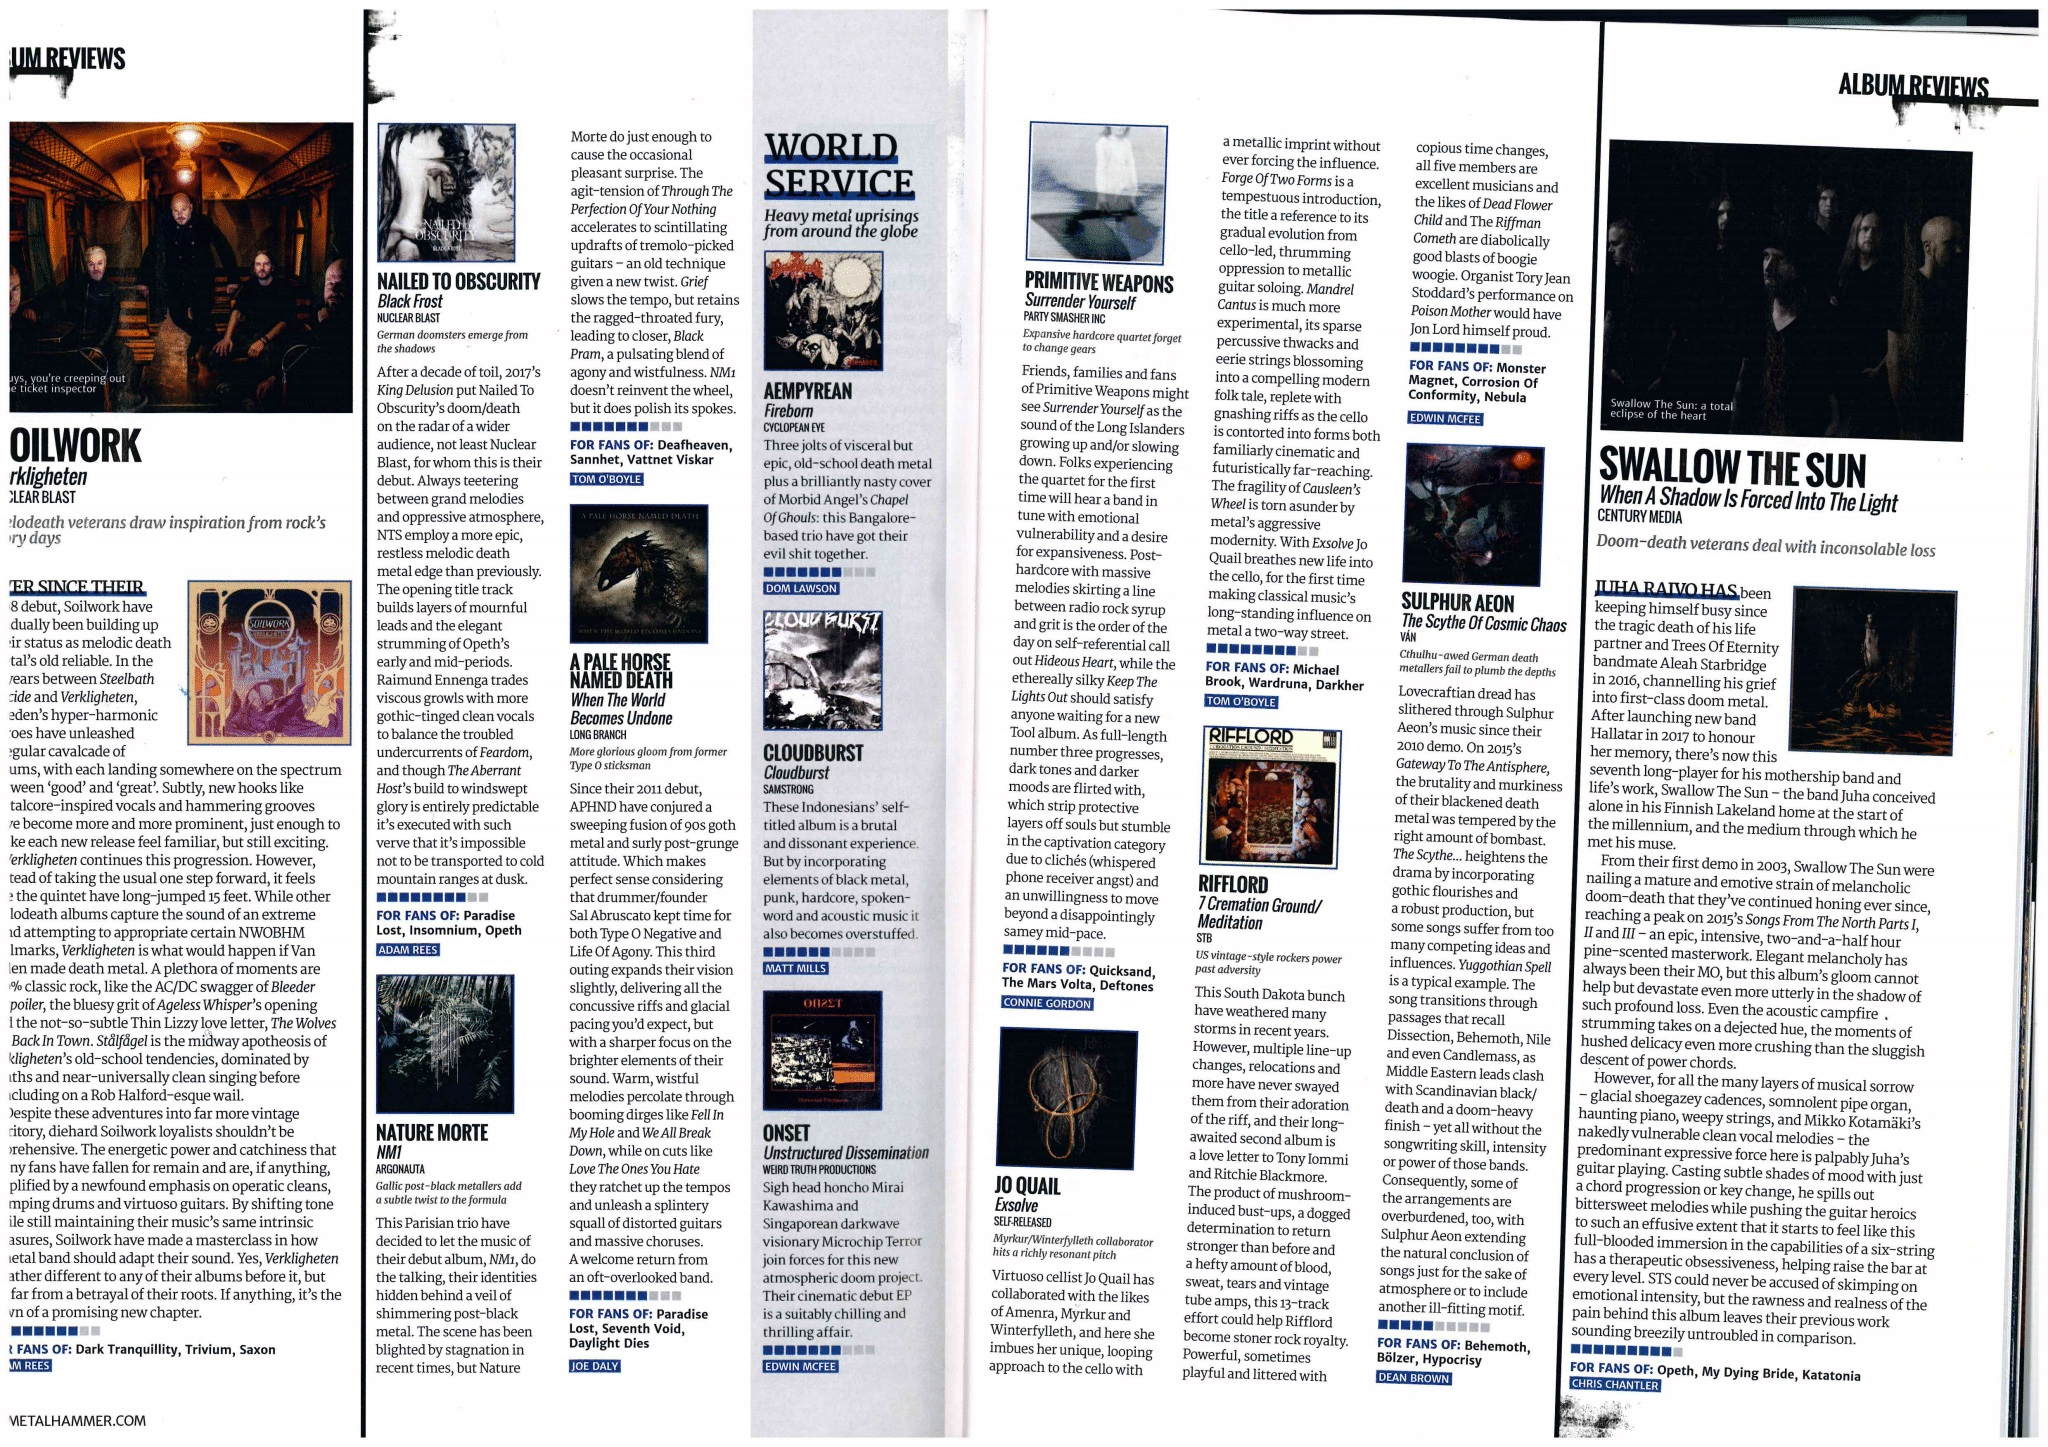 Metal Hammer 8/10 for Exsolve!